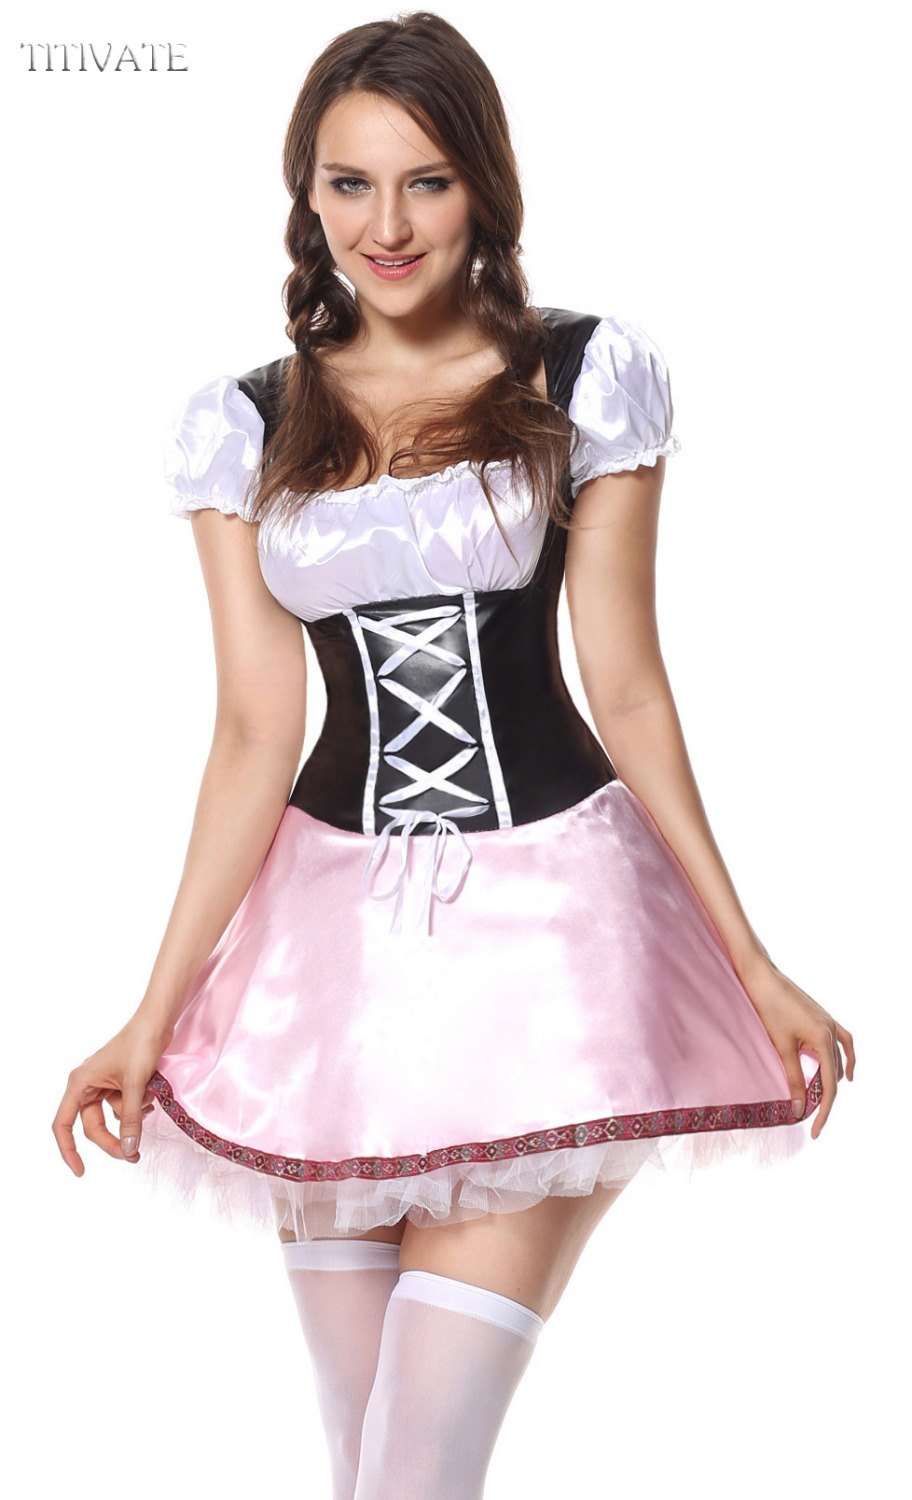 TITIVATE Beer Girl Oktoberfest Halloween Costume Maid German Bavaria Carnival Cosplay Fancy Dress Pink Black For Aadult Women